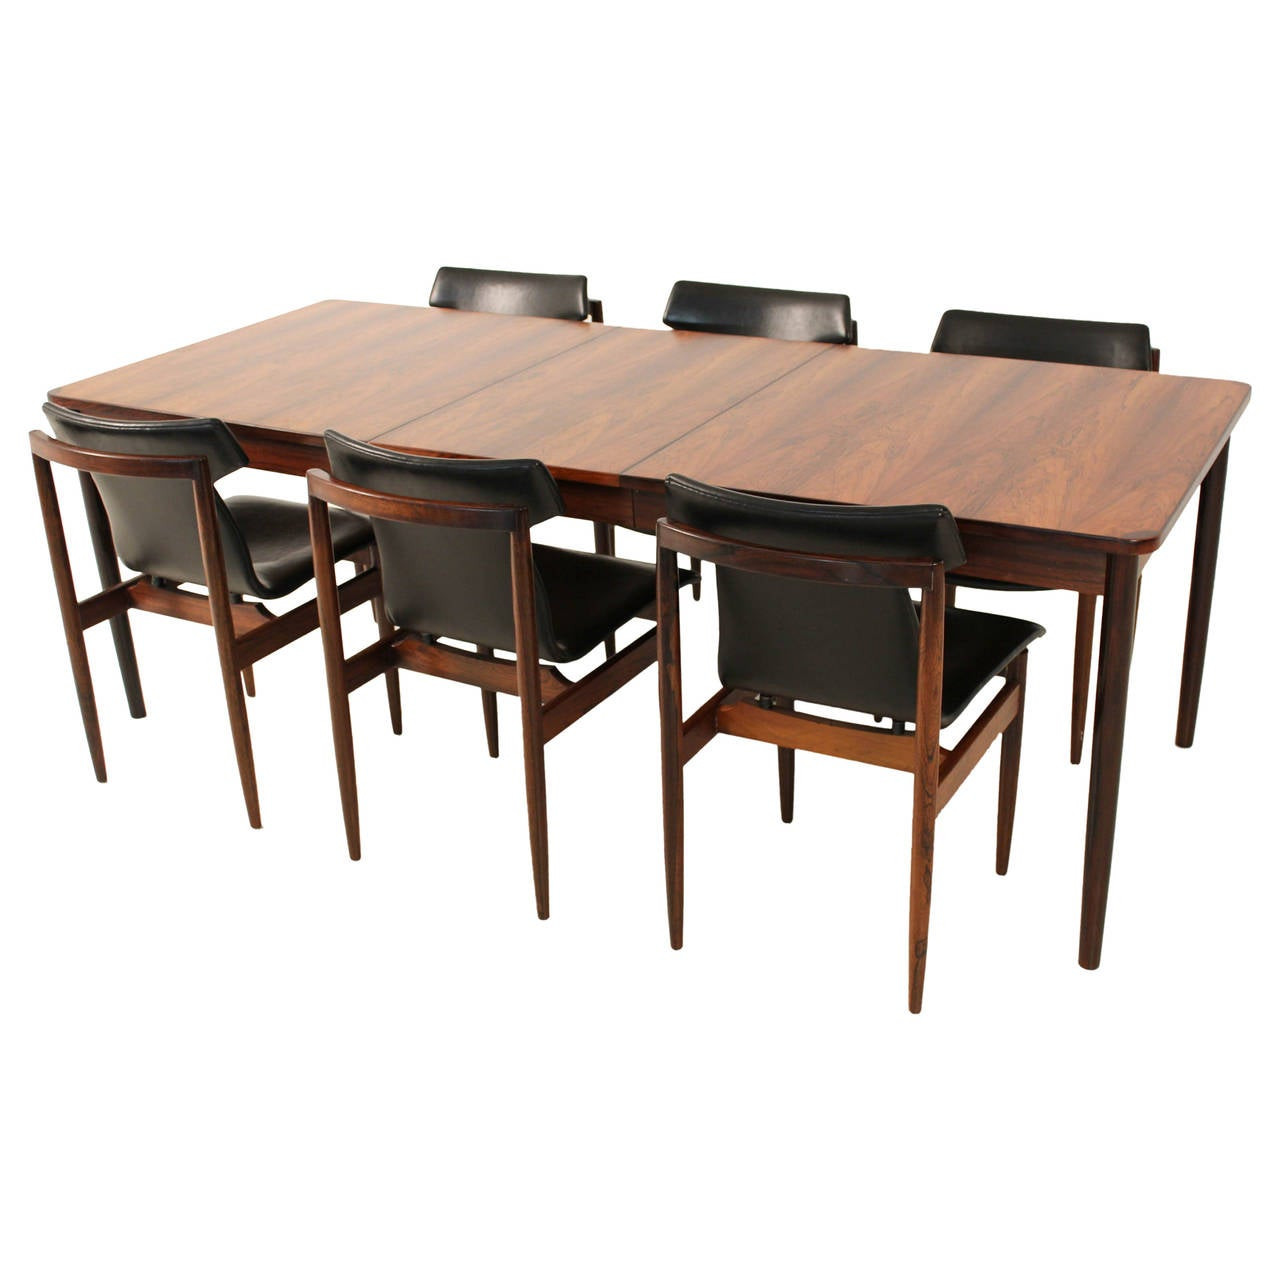 Best ideas about Mid Century Modern Dining Table . Save or Pin Mid Century Modern Dining Table by Fristho at 1stdibs Now.